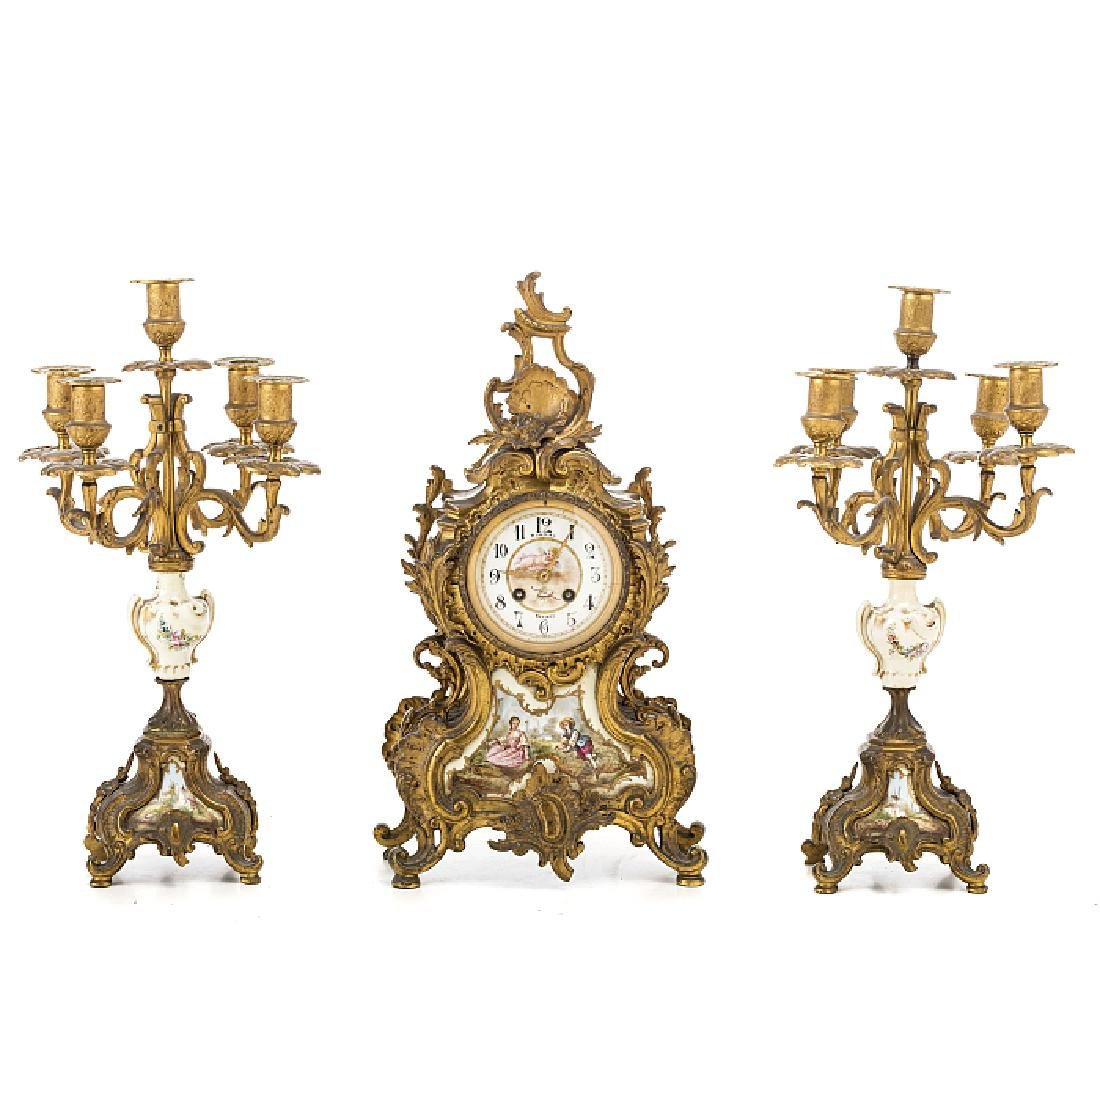 Three pieces of a table clock in bronze and porcelain